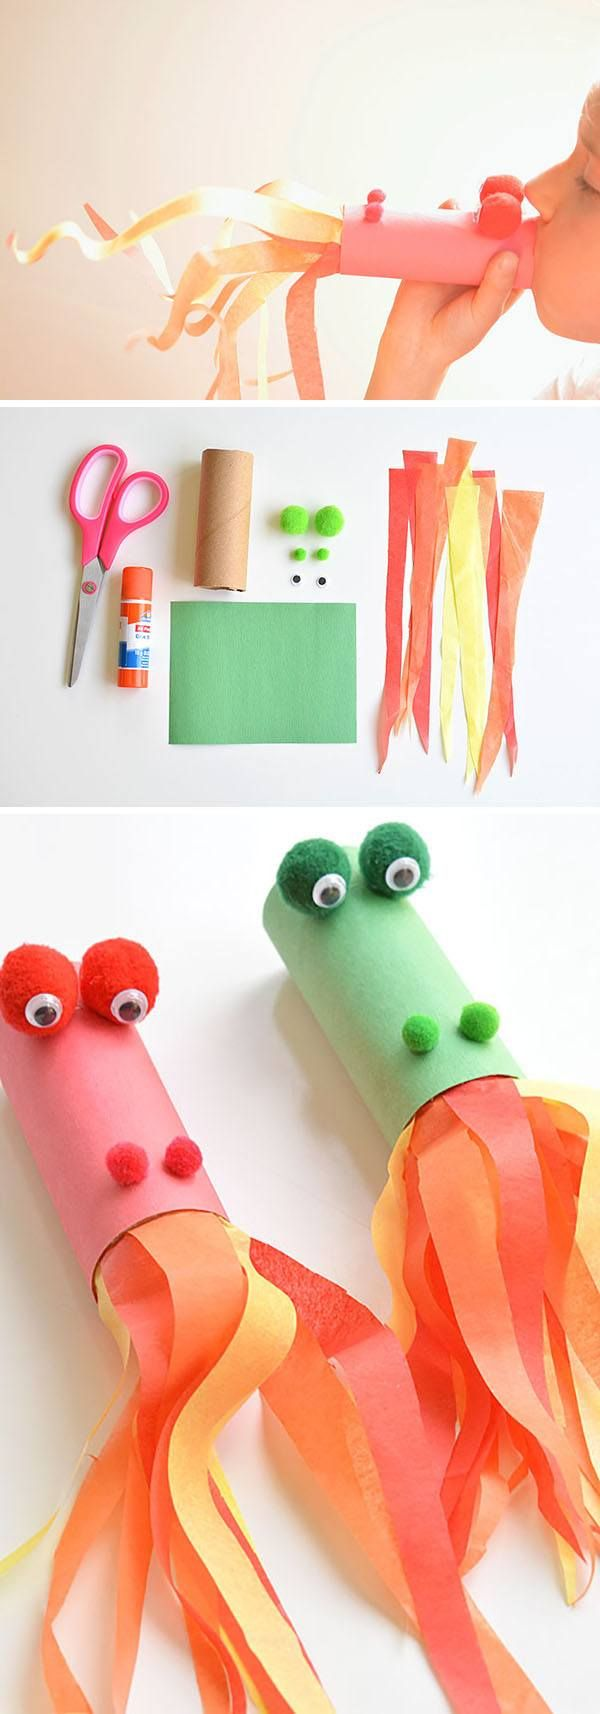 15 toilet paper roll crafts for kids - Pictures Of Crafts For Kids